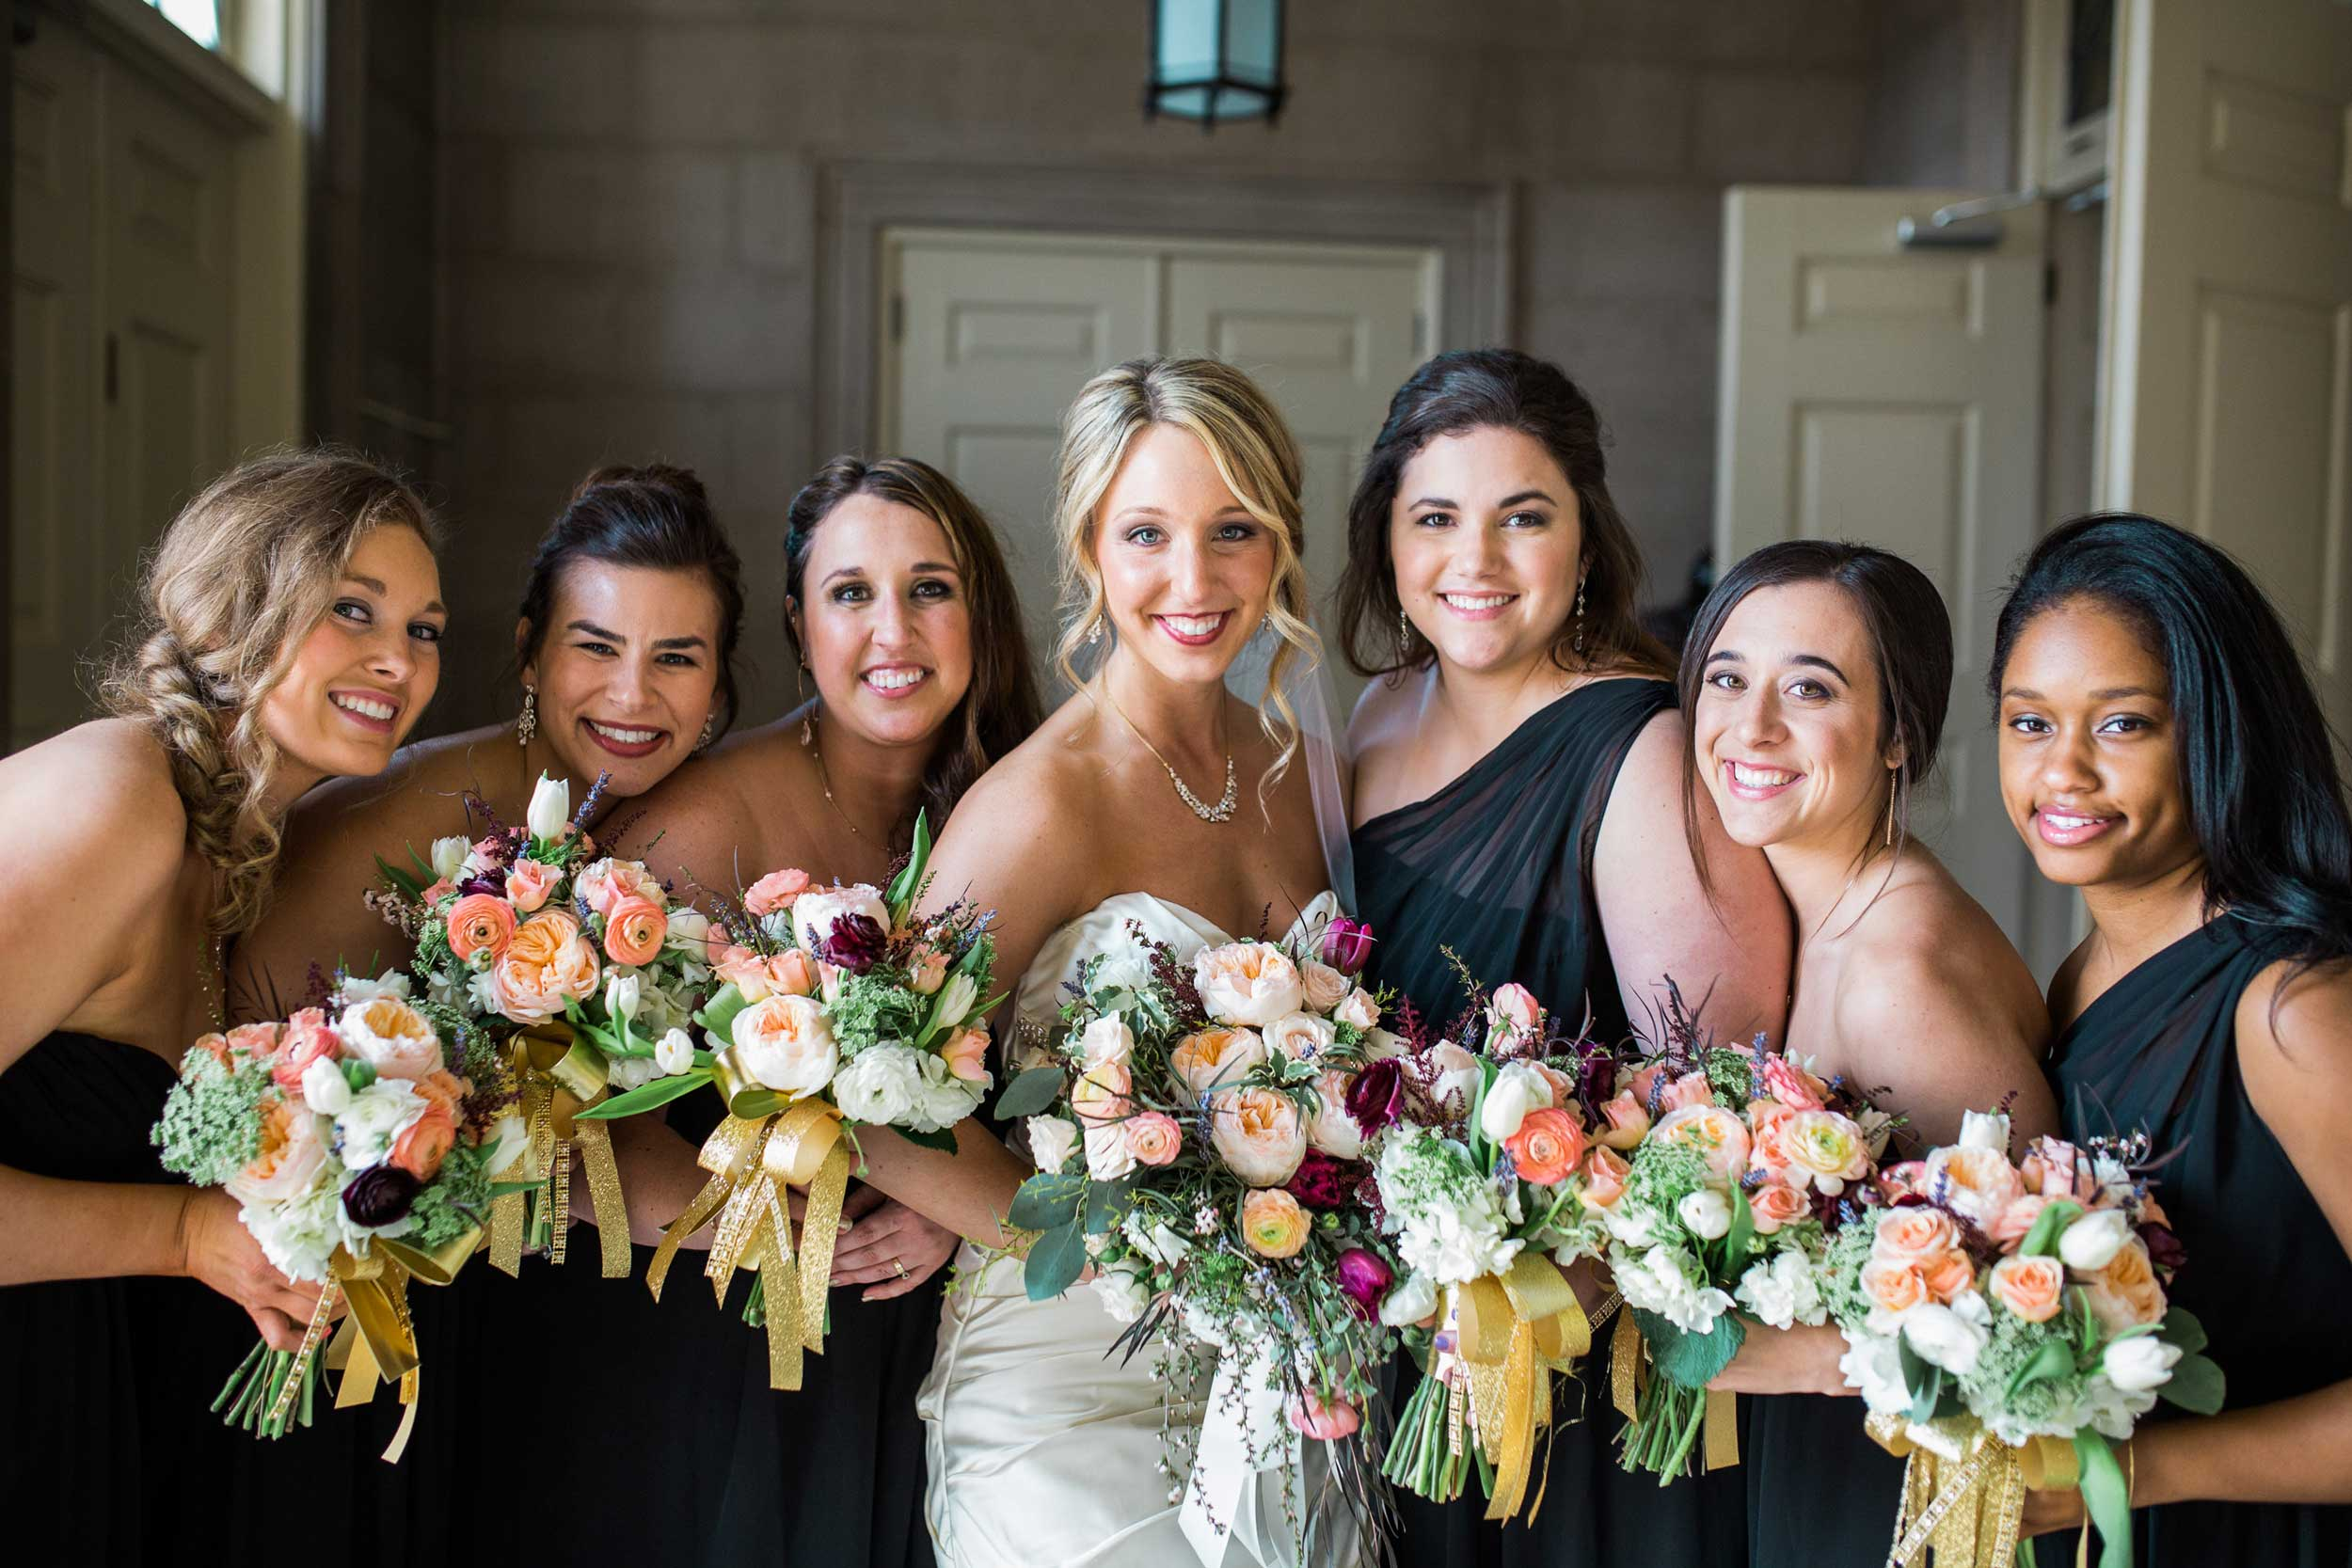 Bridesmaids at the Dennison University Chapel in Granville, OH